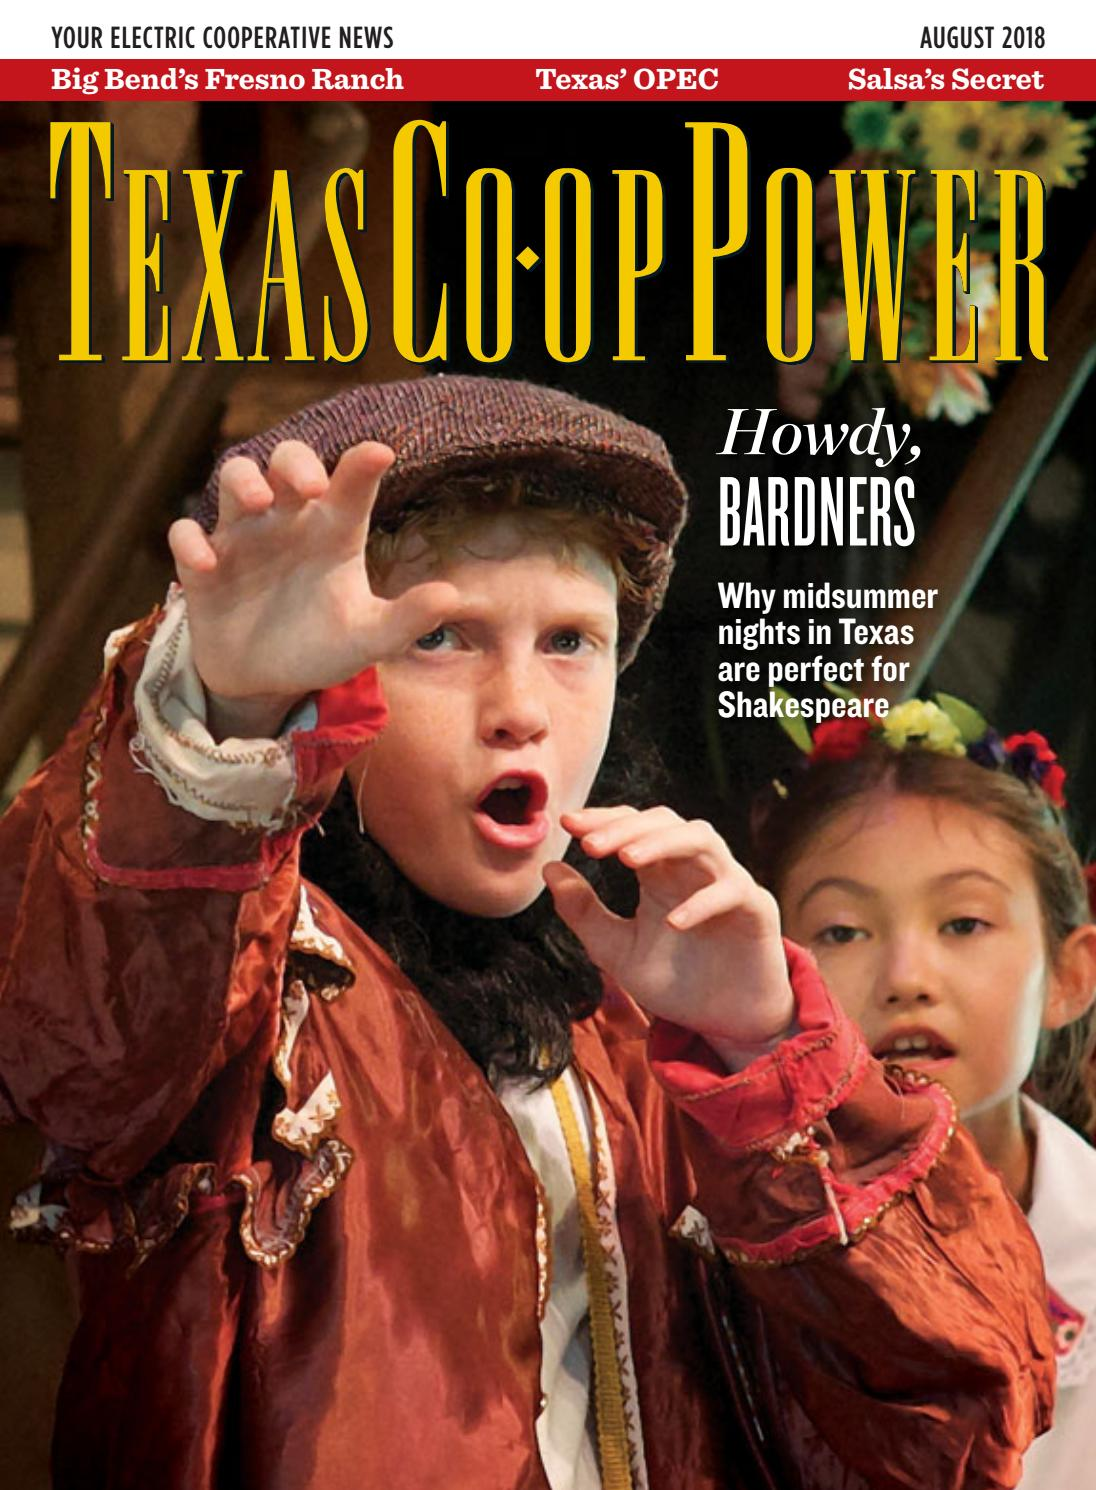 6cd59b95edf Bandera Electric Texas Co-op Power August 2018 by Bandera Electric  Cooperative - issuu